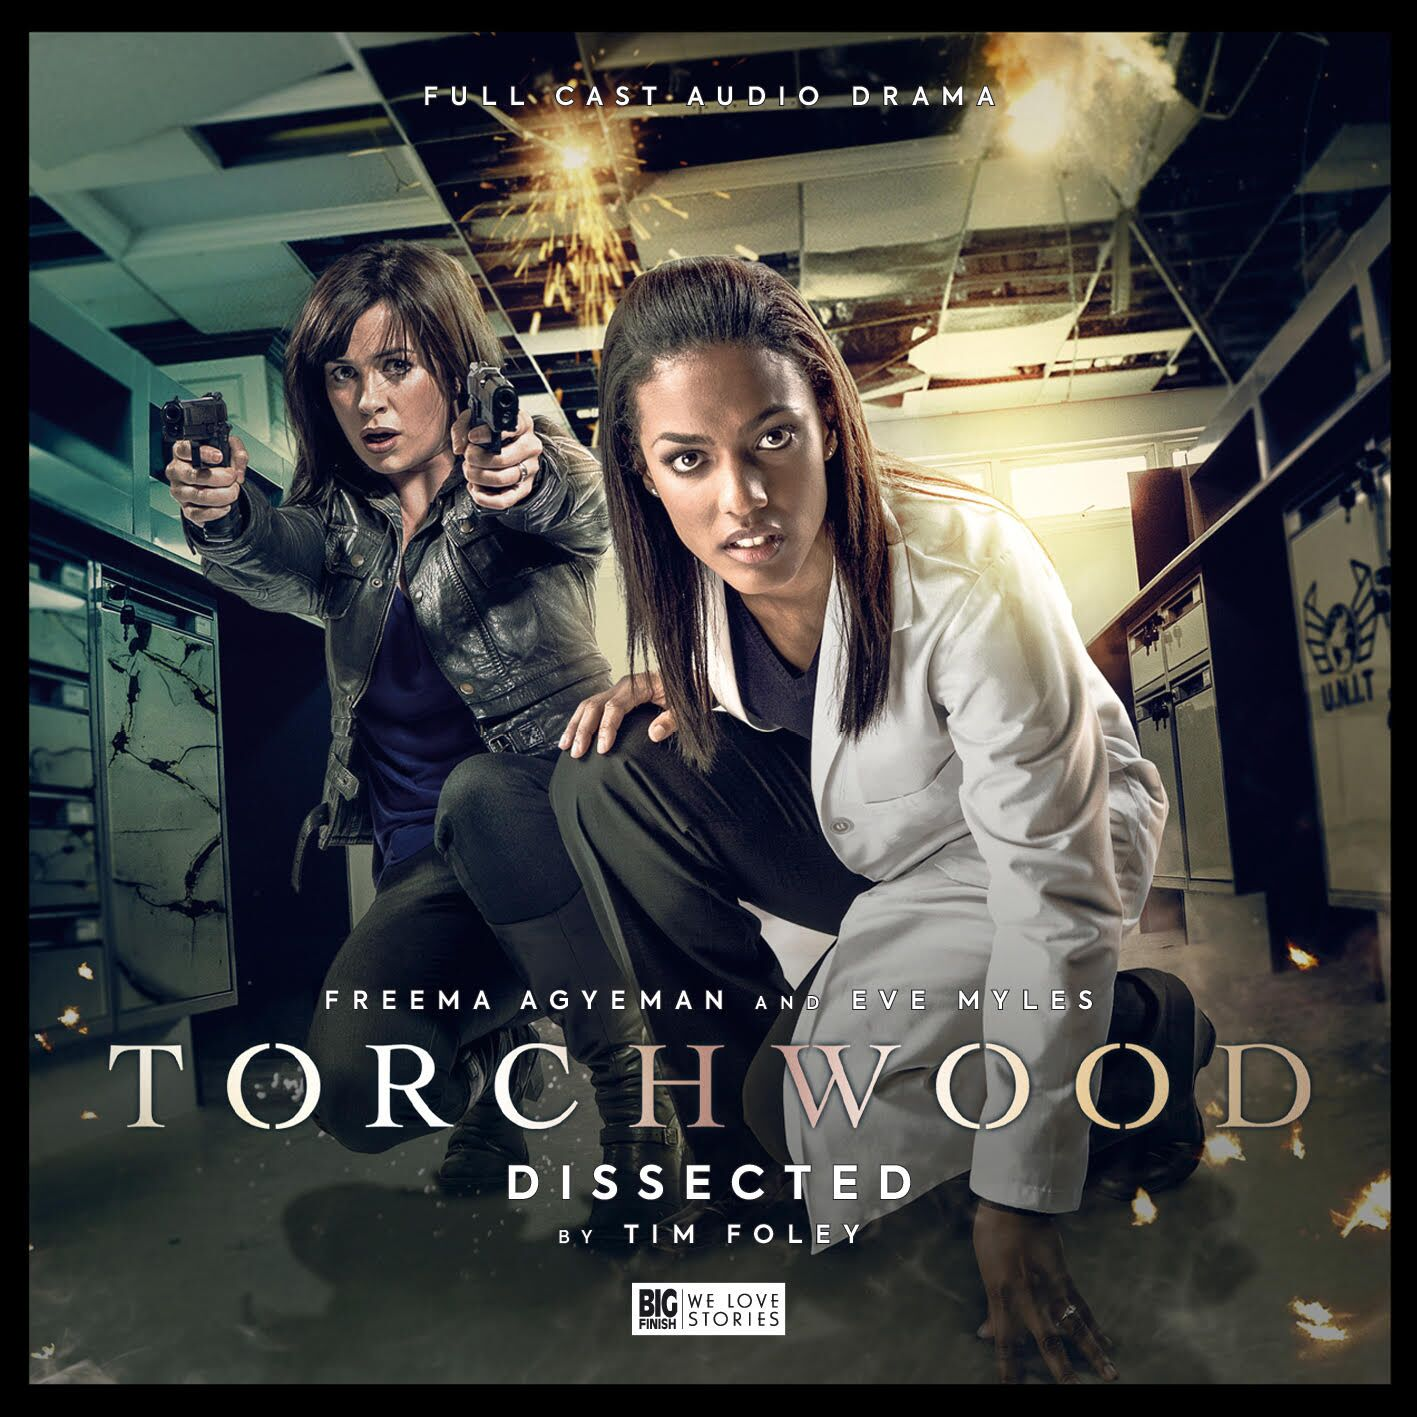 Torchwood news: Gwen Cooper and Martha Jones are reunited in Dissected